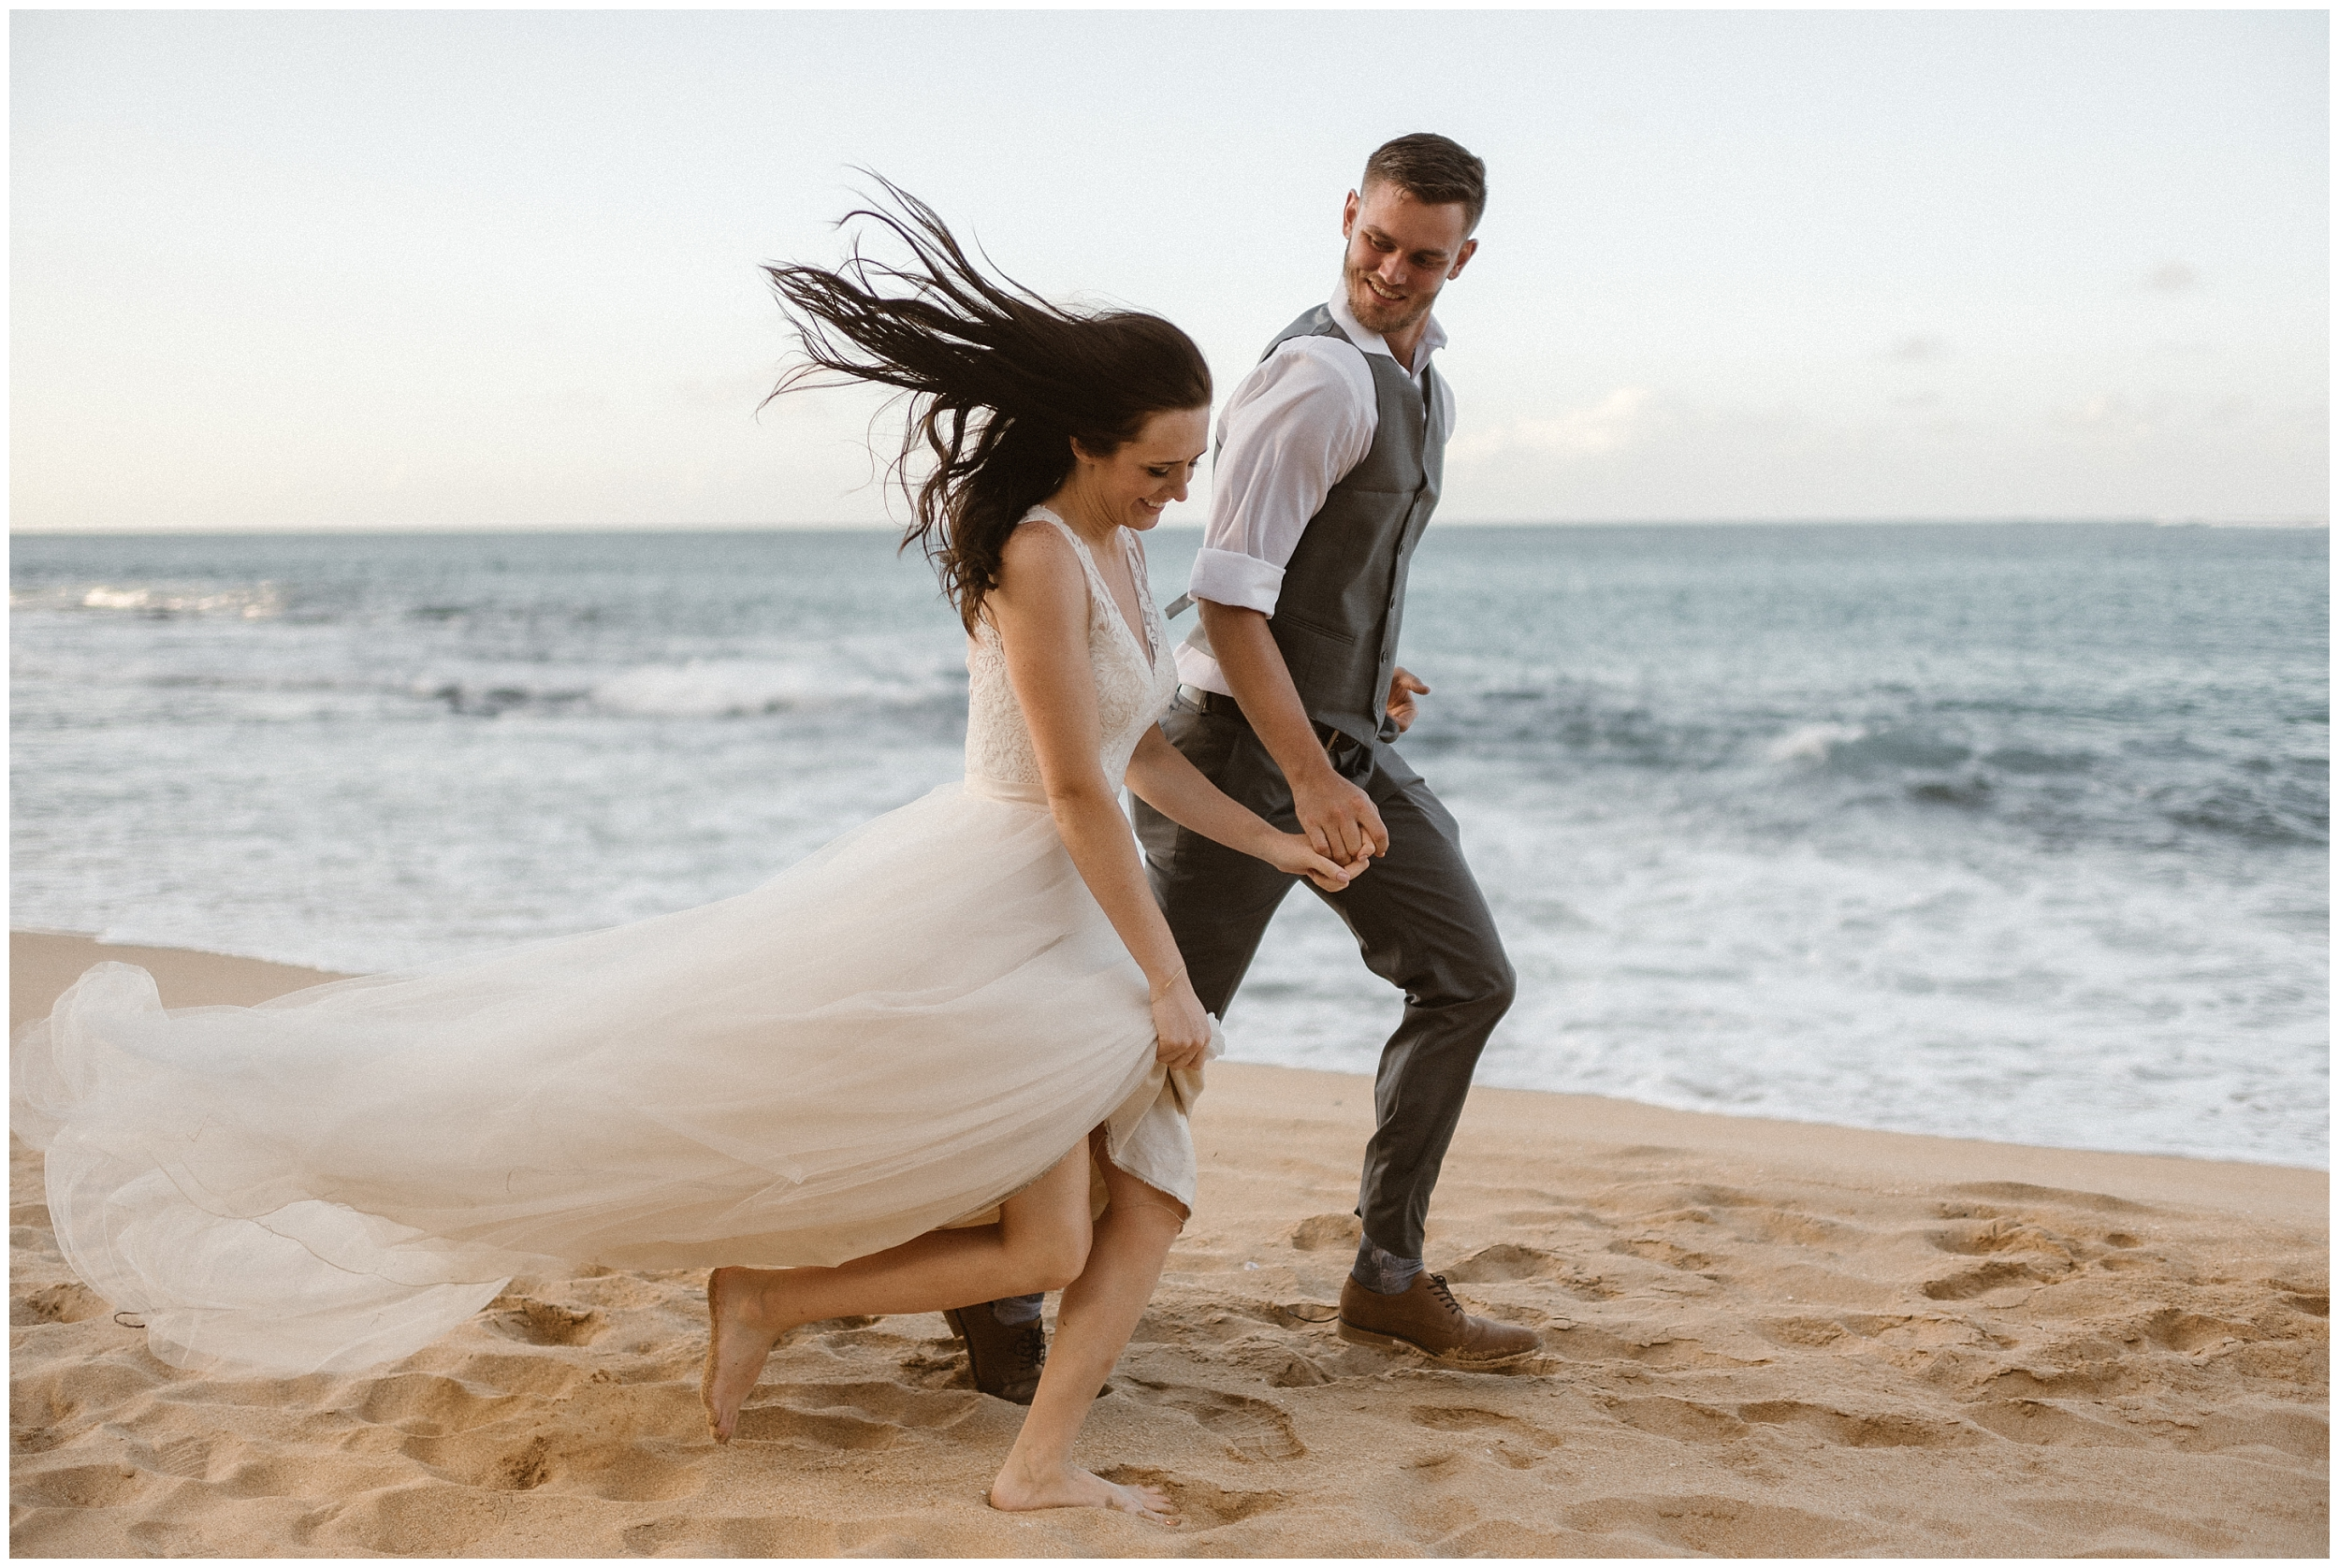 A bride and groom, in their wedding attire, walk hand-in-hand down a beautiful beach in the United States. The couple wanted to include this unique eloping idea into their small simple wedding.